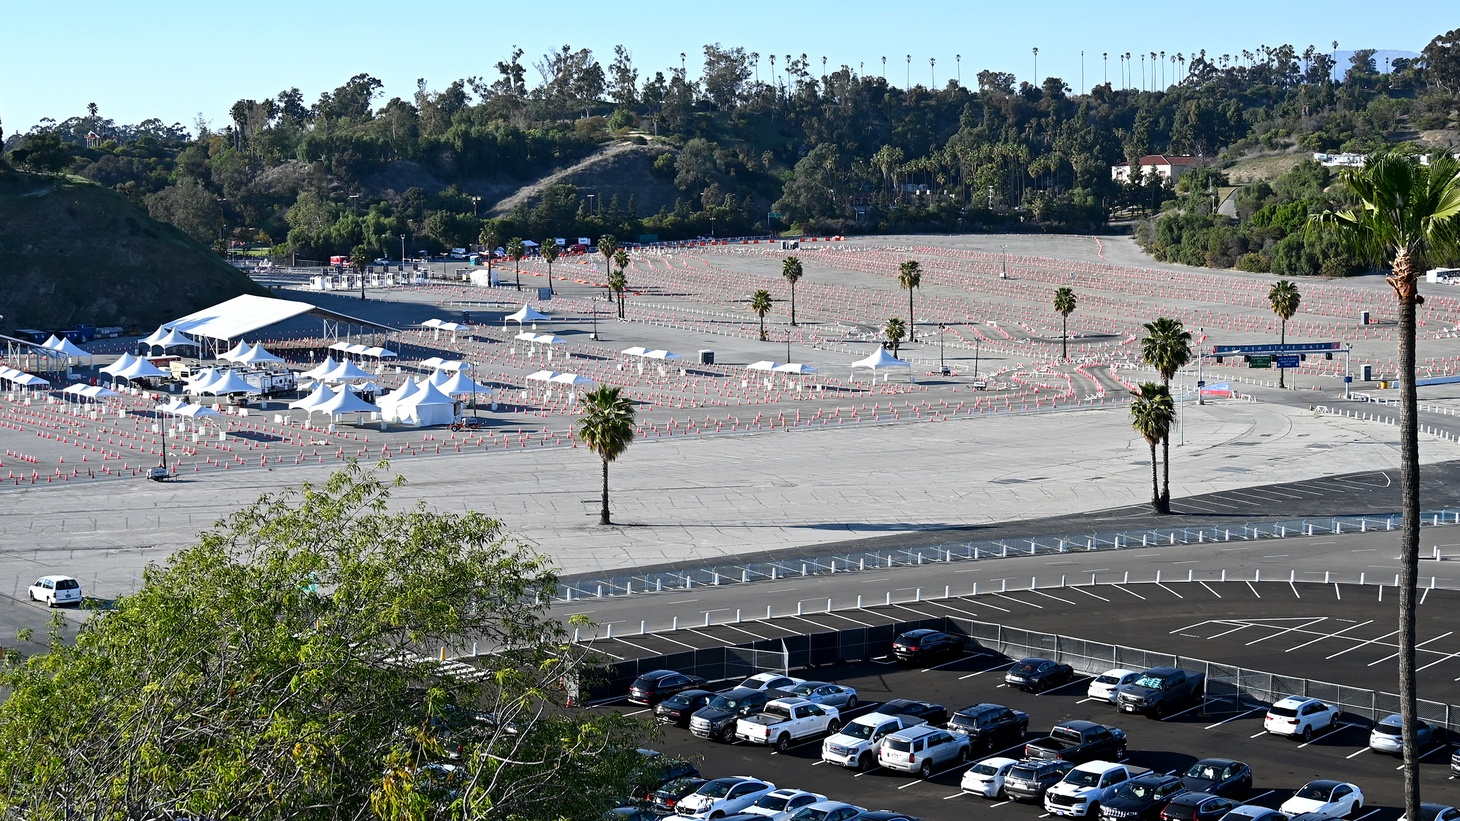 Traffic cones line the Dodger Stadium parking lot while it's used as a COVID-19 vaccine site, Mar 29, 2021, Los Angeles, California, USA.